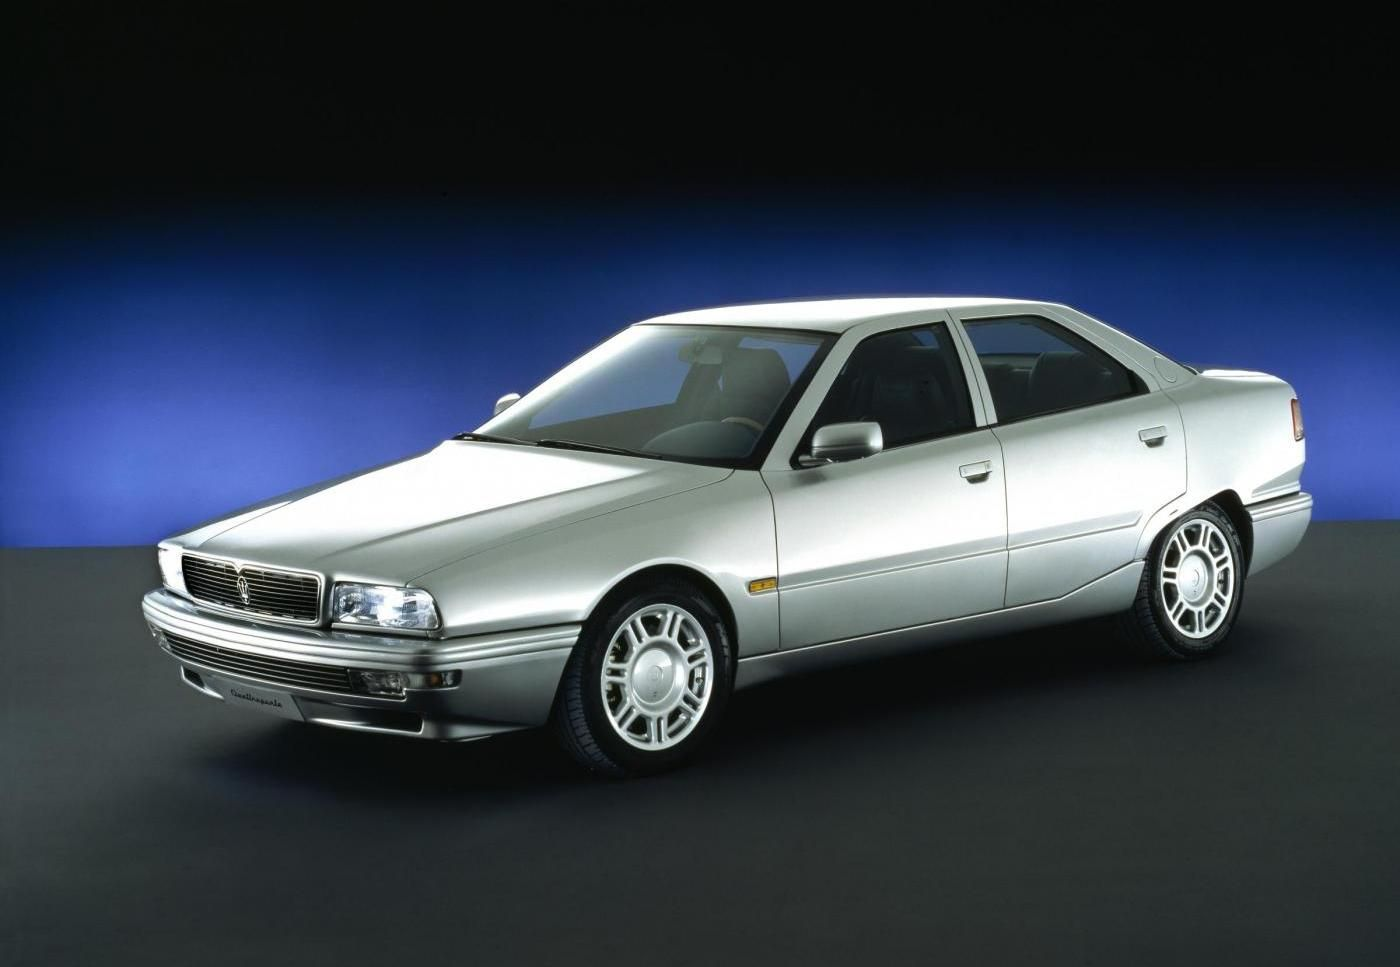 1994 Maserati Quattroporte IV - exterior view of the 5-seater sedan in gray